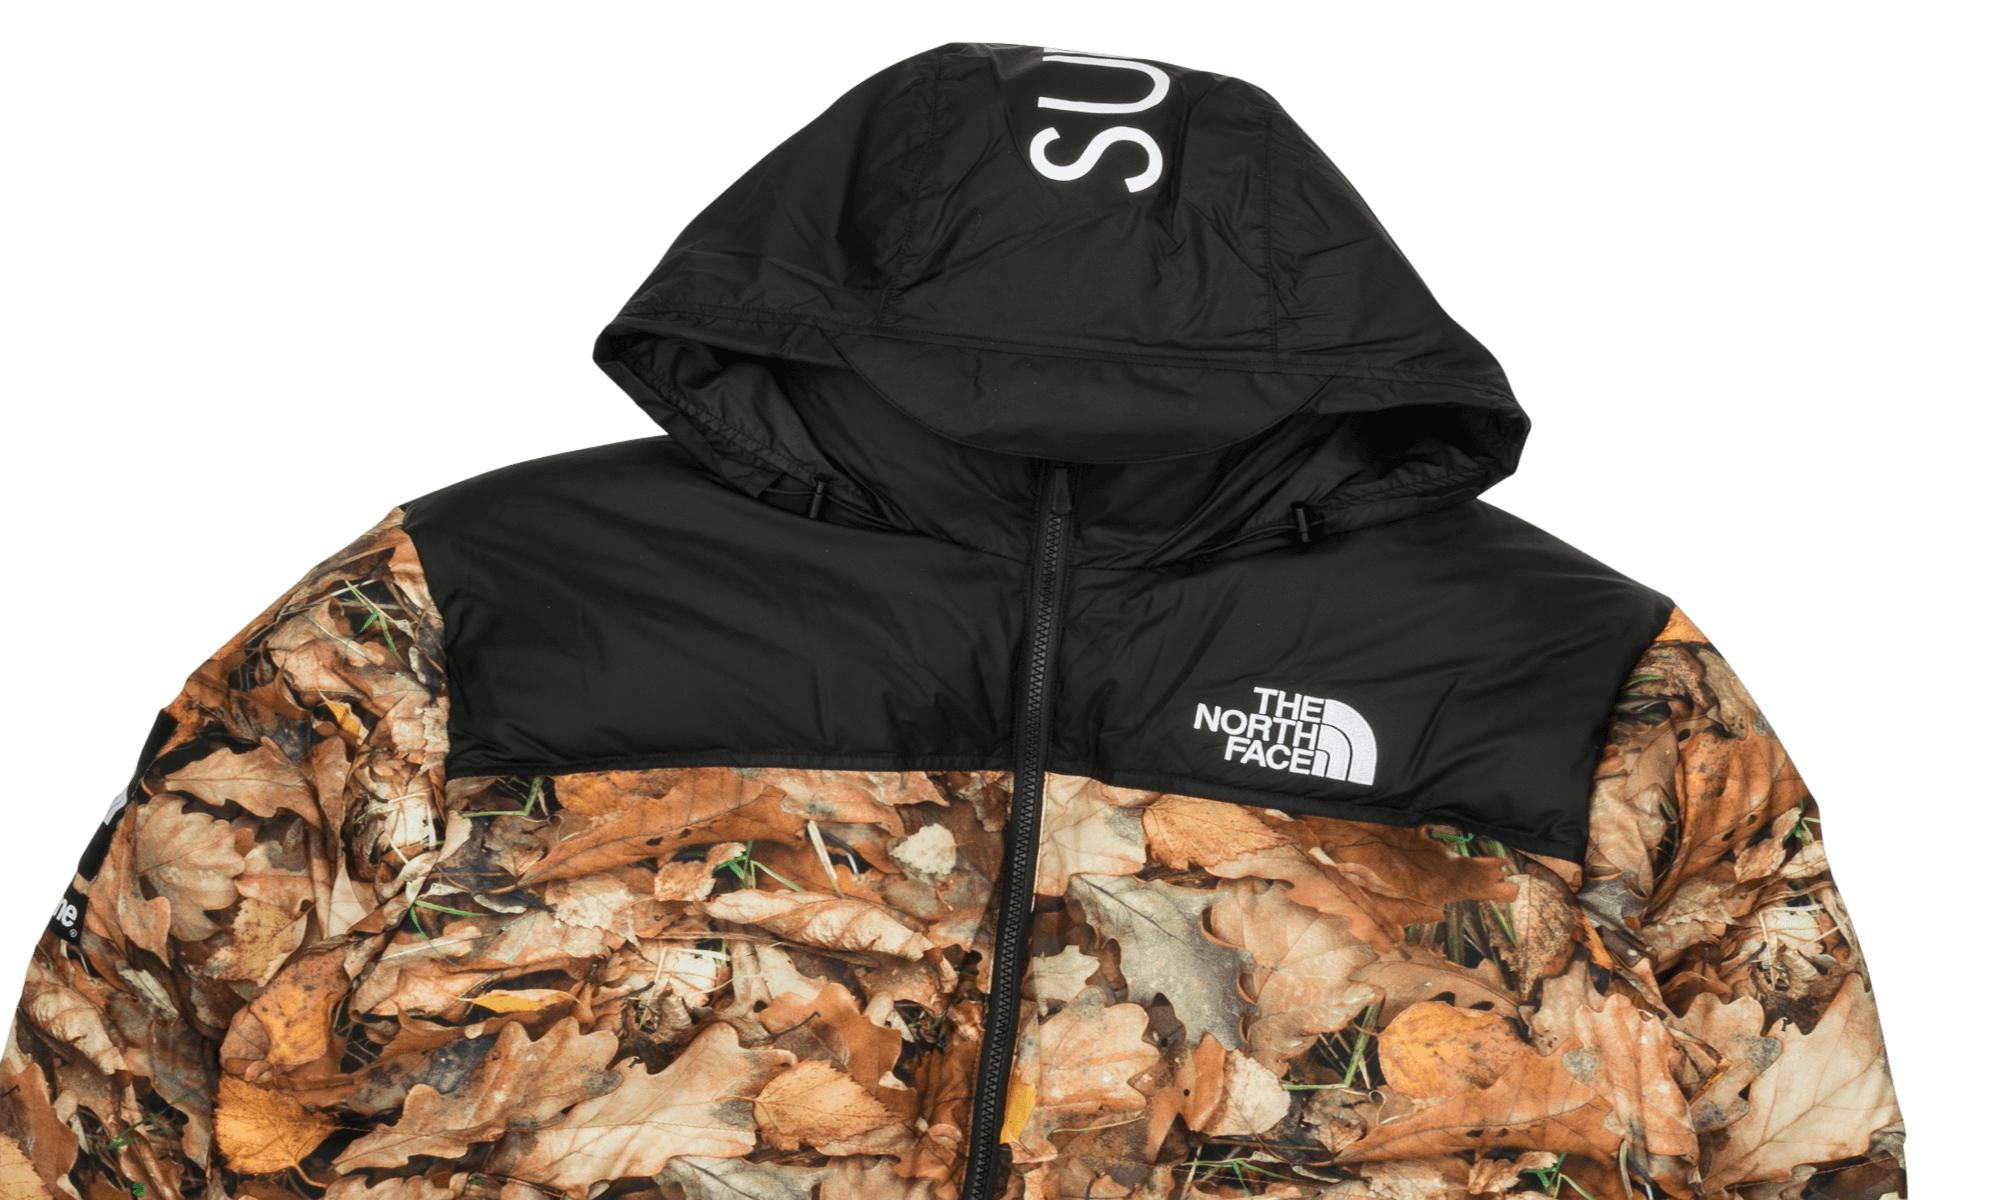 supremethe north face nuptse jacket leaves new product 53f28 501b0 ... 0081927d3